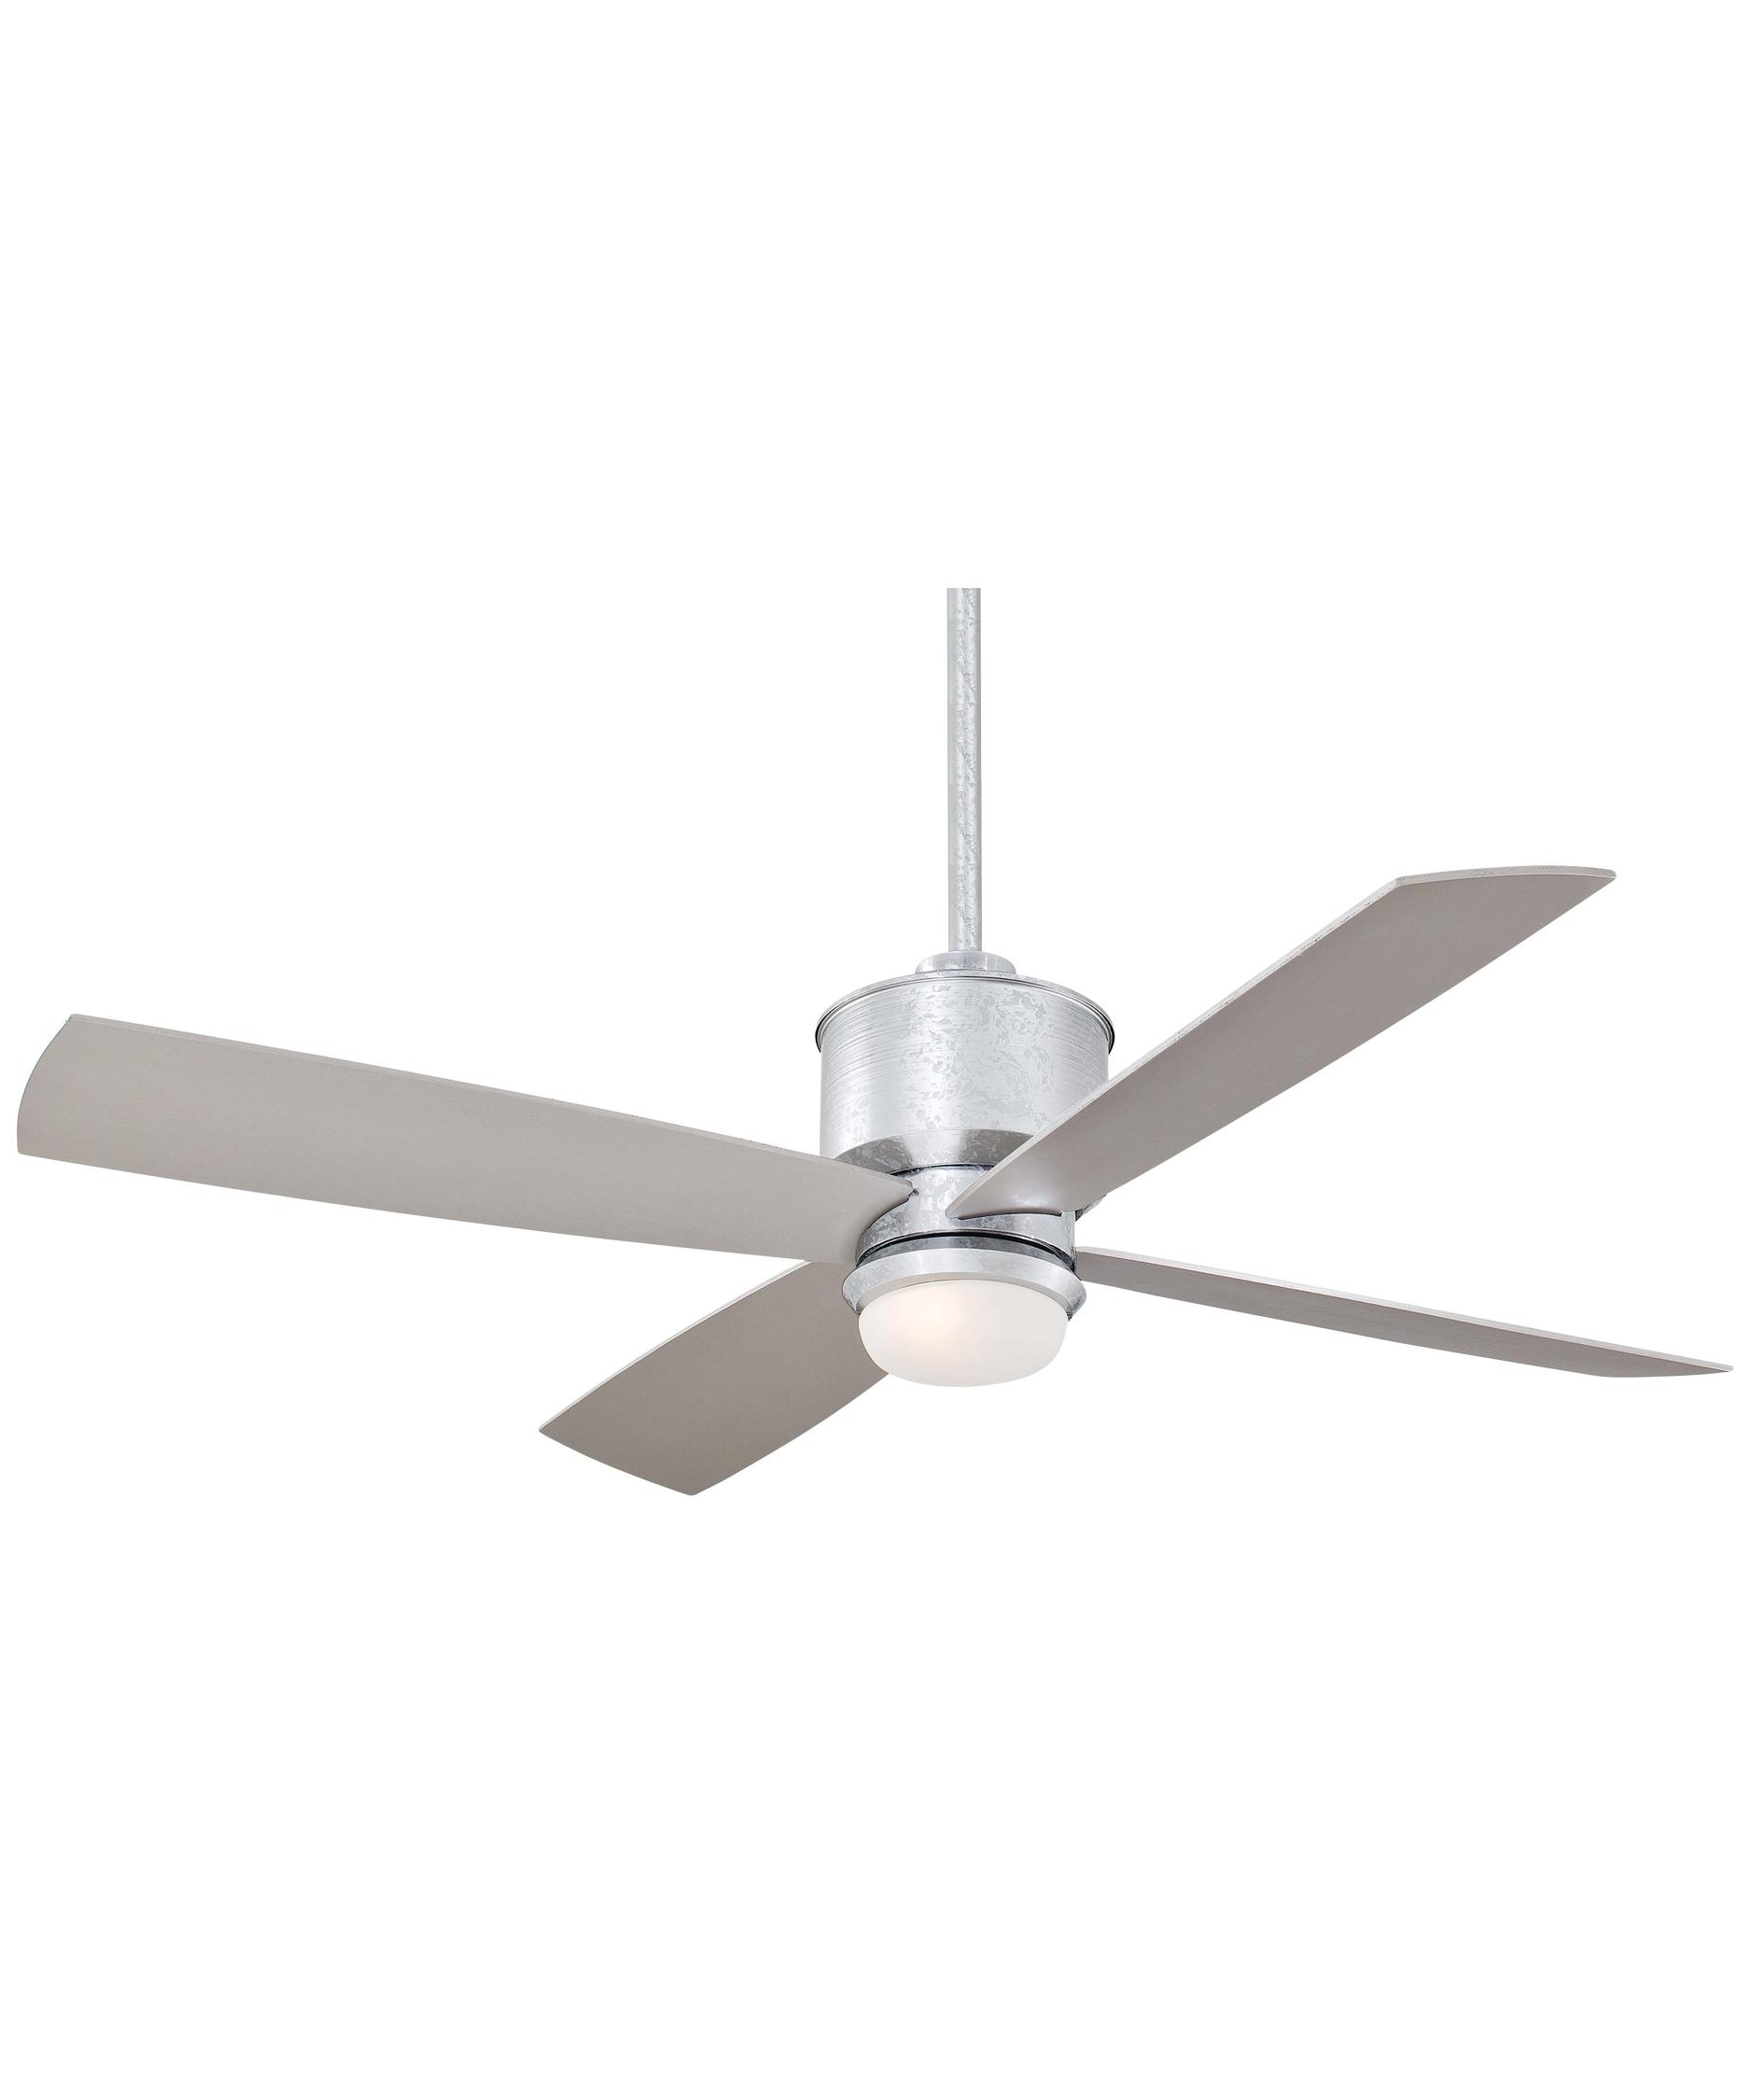 Popular Galvanized Outdoor Ceiling Fans With Light With Regard To Minka Aire F734 Strata 52 Inch 4 Blade Ceiling Fan (View 6 of 20)